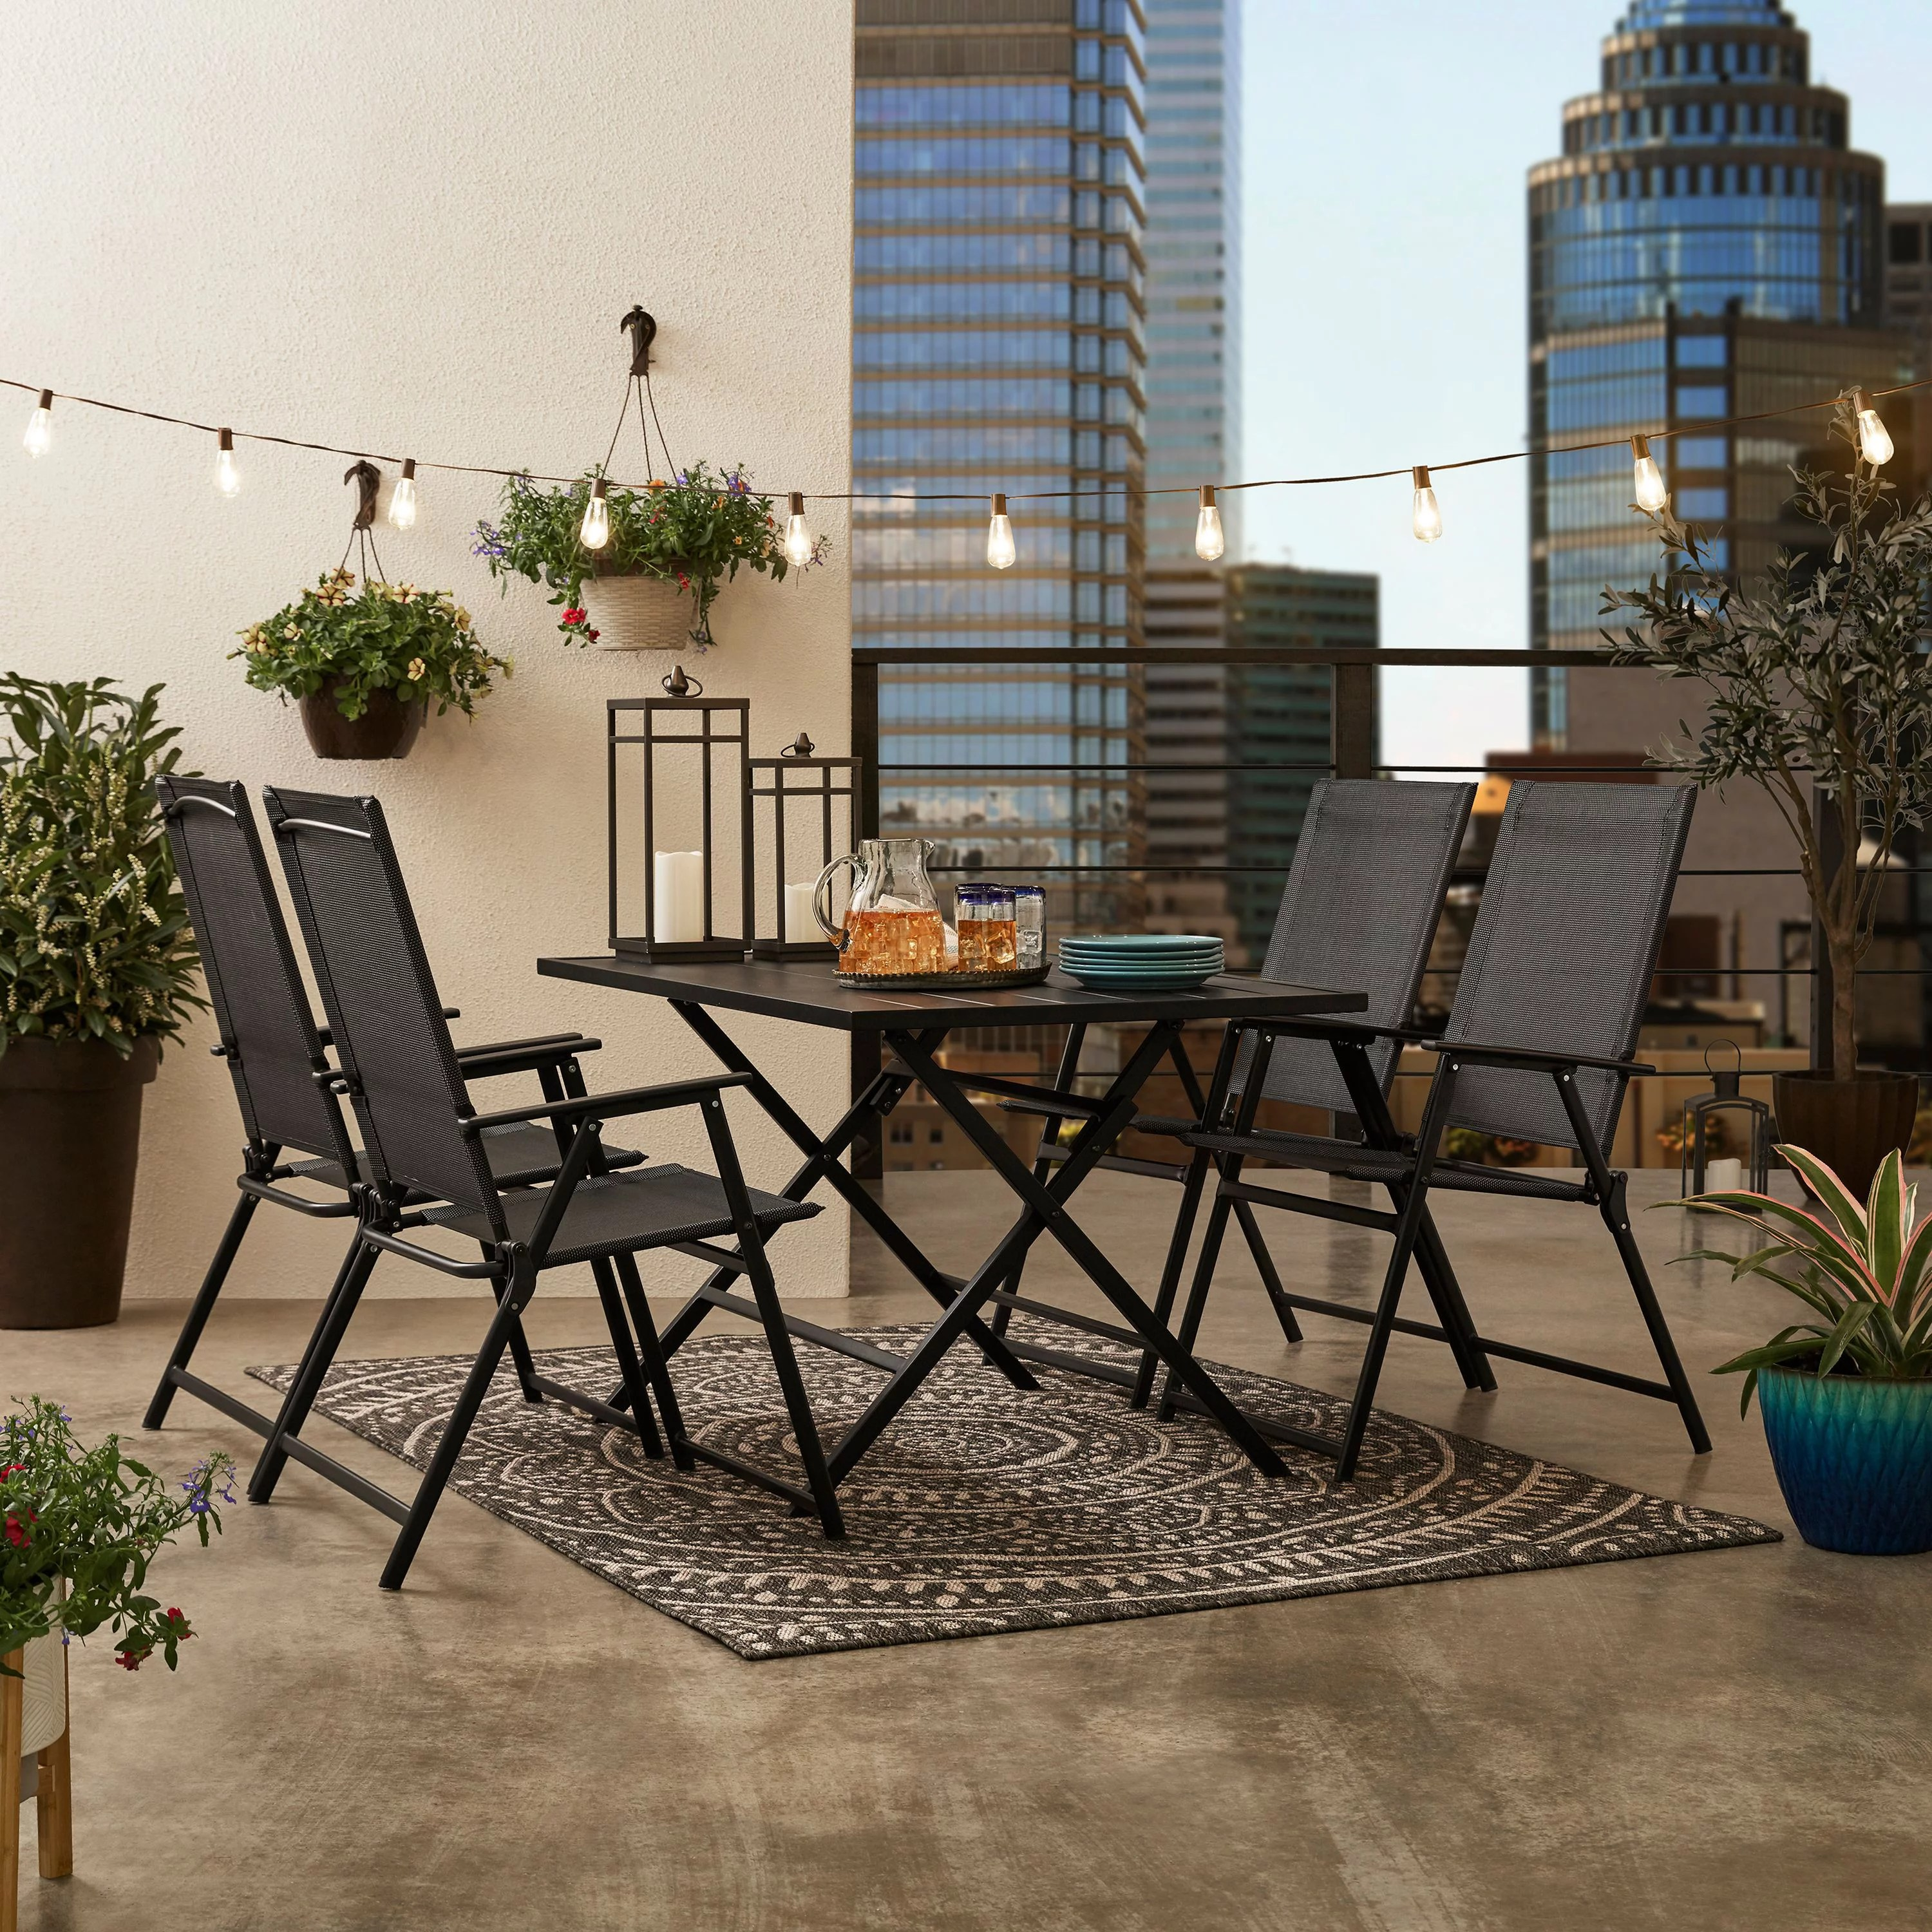 mainstays greyson square patio 5 piece folding dining set included 4 chairs and 1 table black walmart com